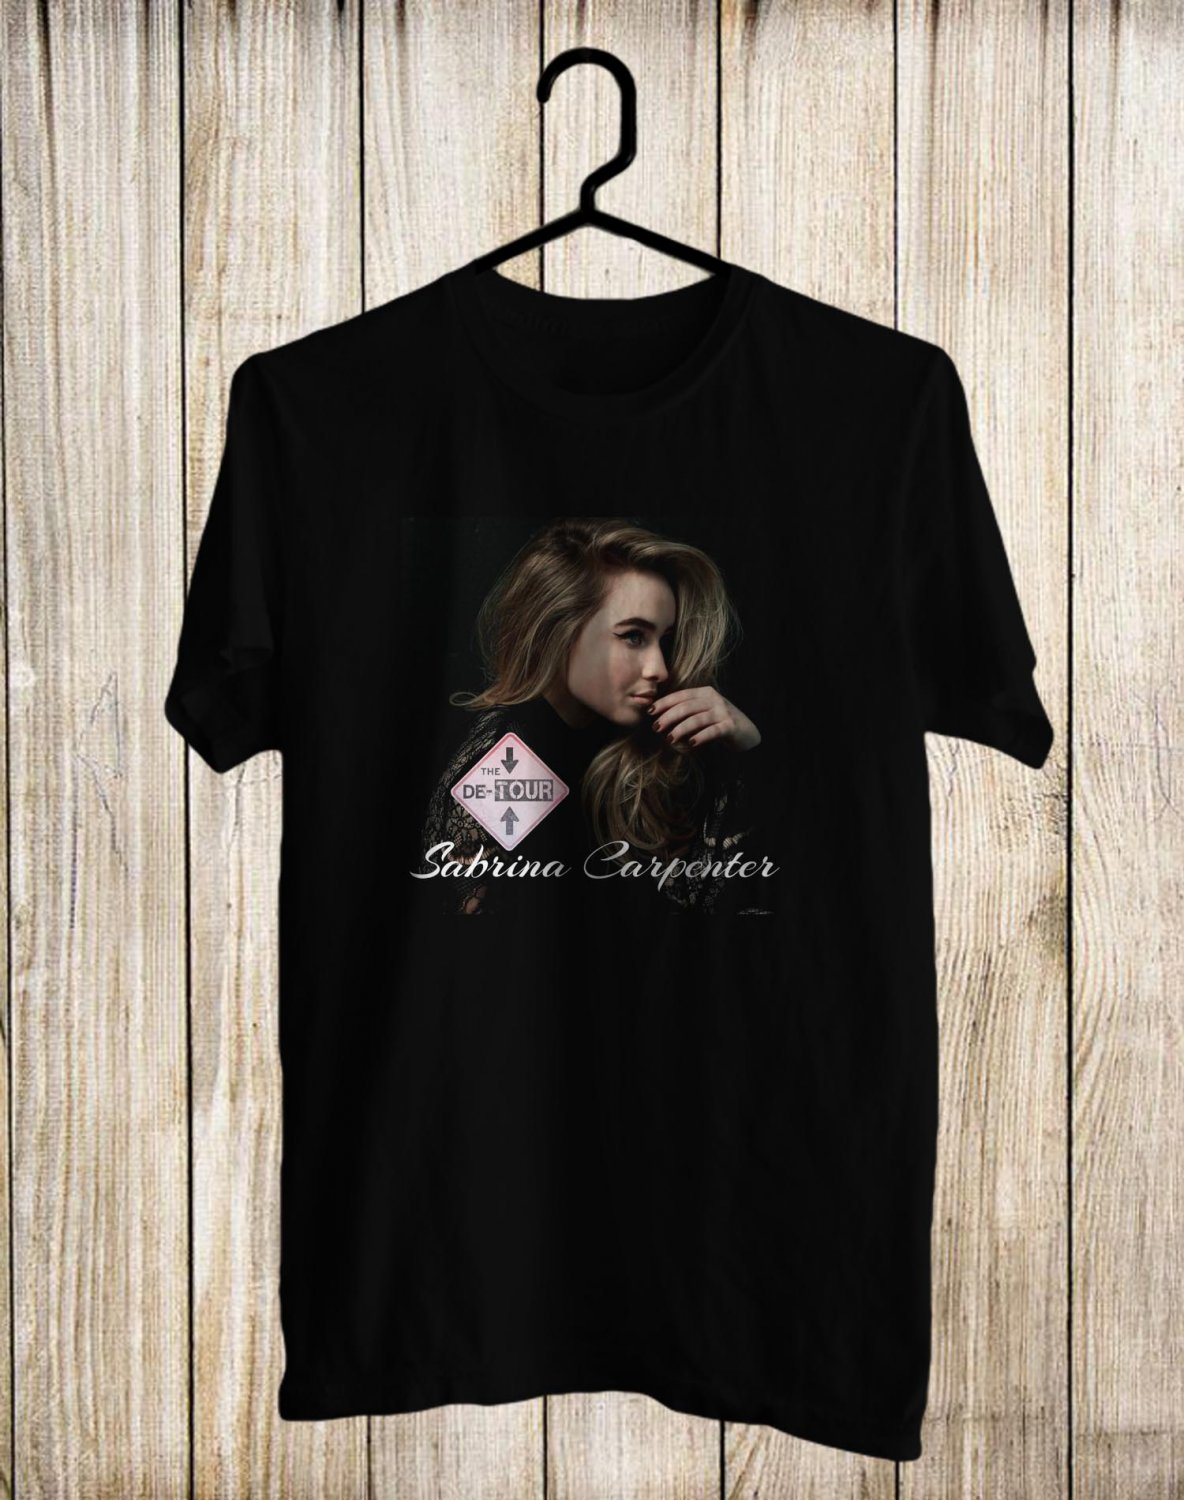 Sabrina Carpenter The De-Tour 2017 Black Tee's Front Side by Complexart z1